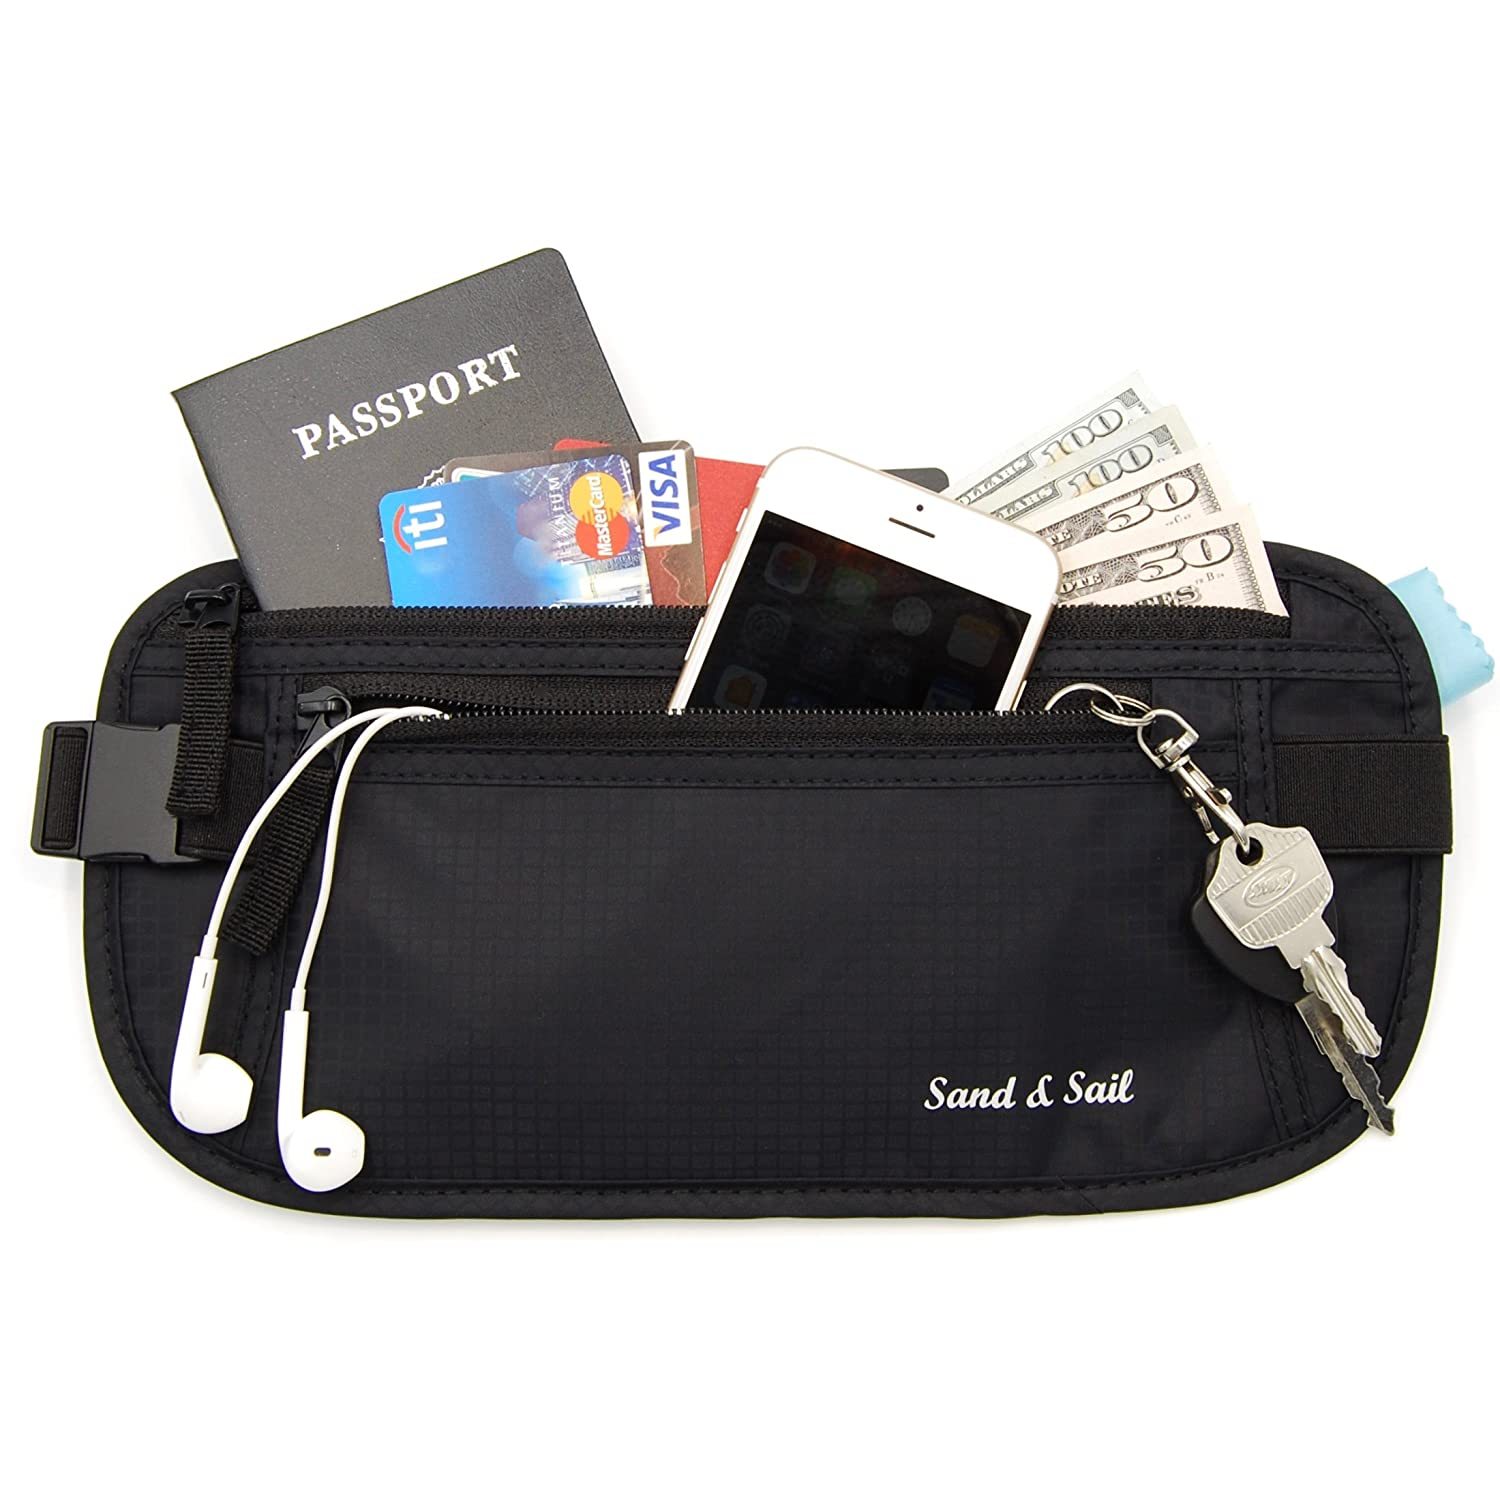 Sand & Sail Travel Hidden Money Belt with RFID Block - Security for Passport, Credit Cards & Cash SS-0001